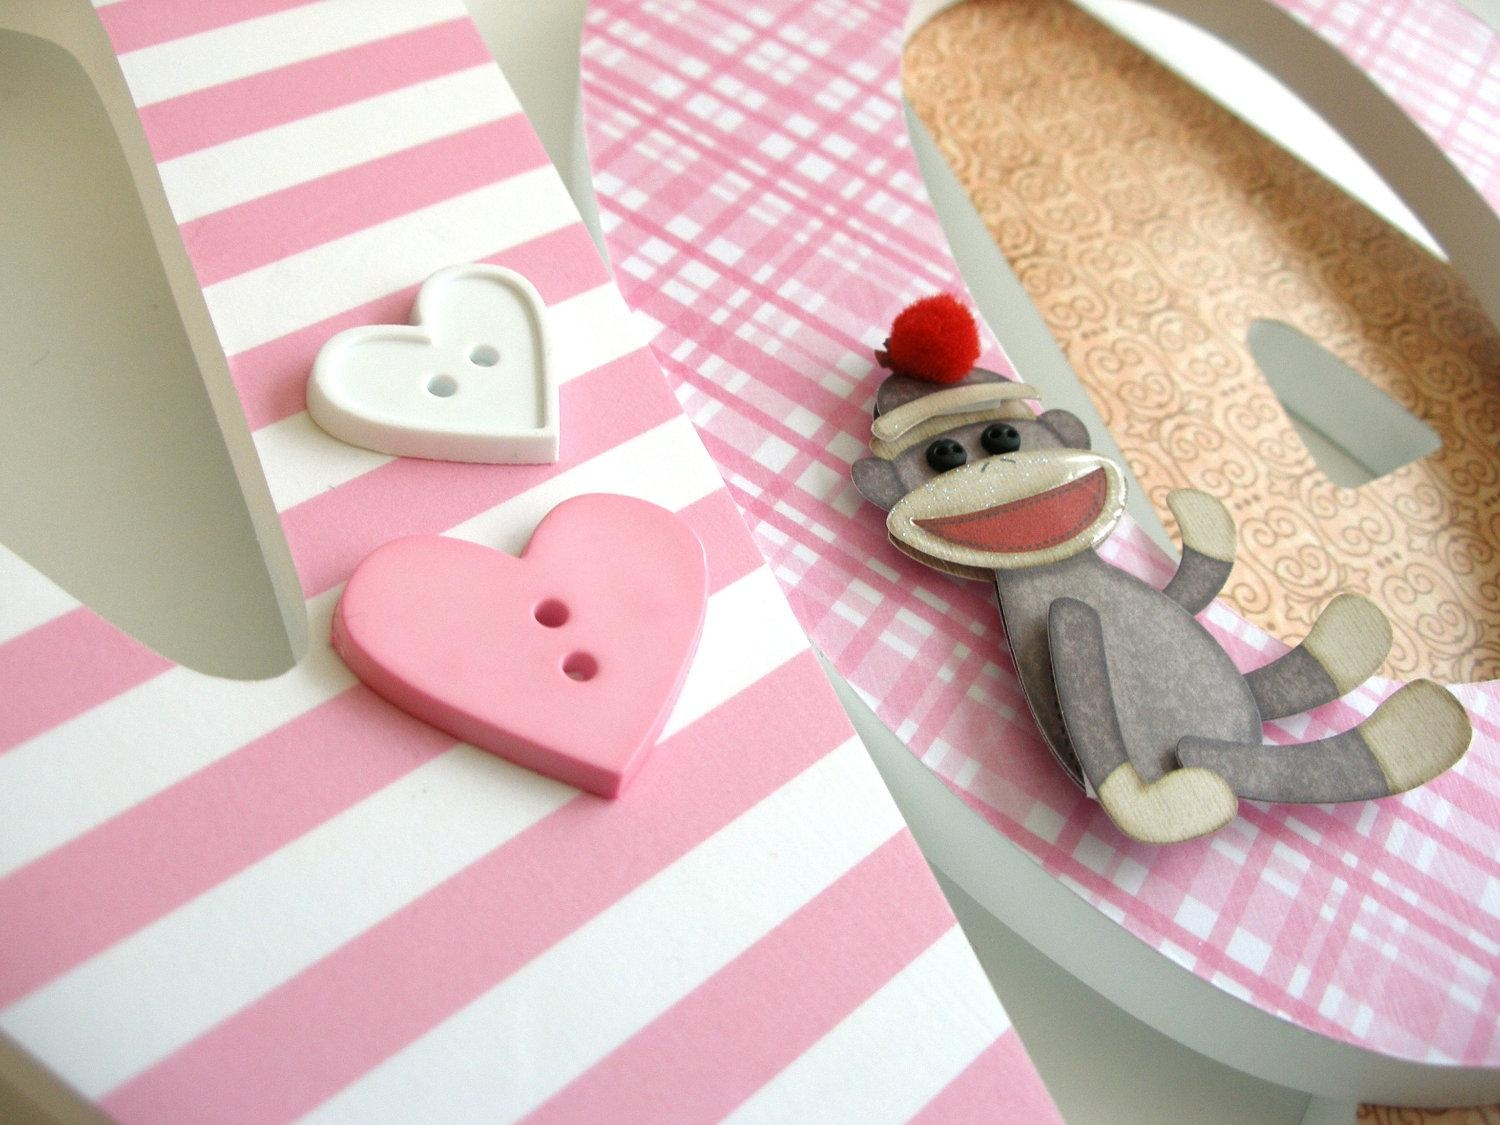 Wooden Wall Nursery Letters For Girls Pink And Brown Sock Pertaining To Sock Monkey Wall Art (View 9 of 20)